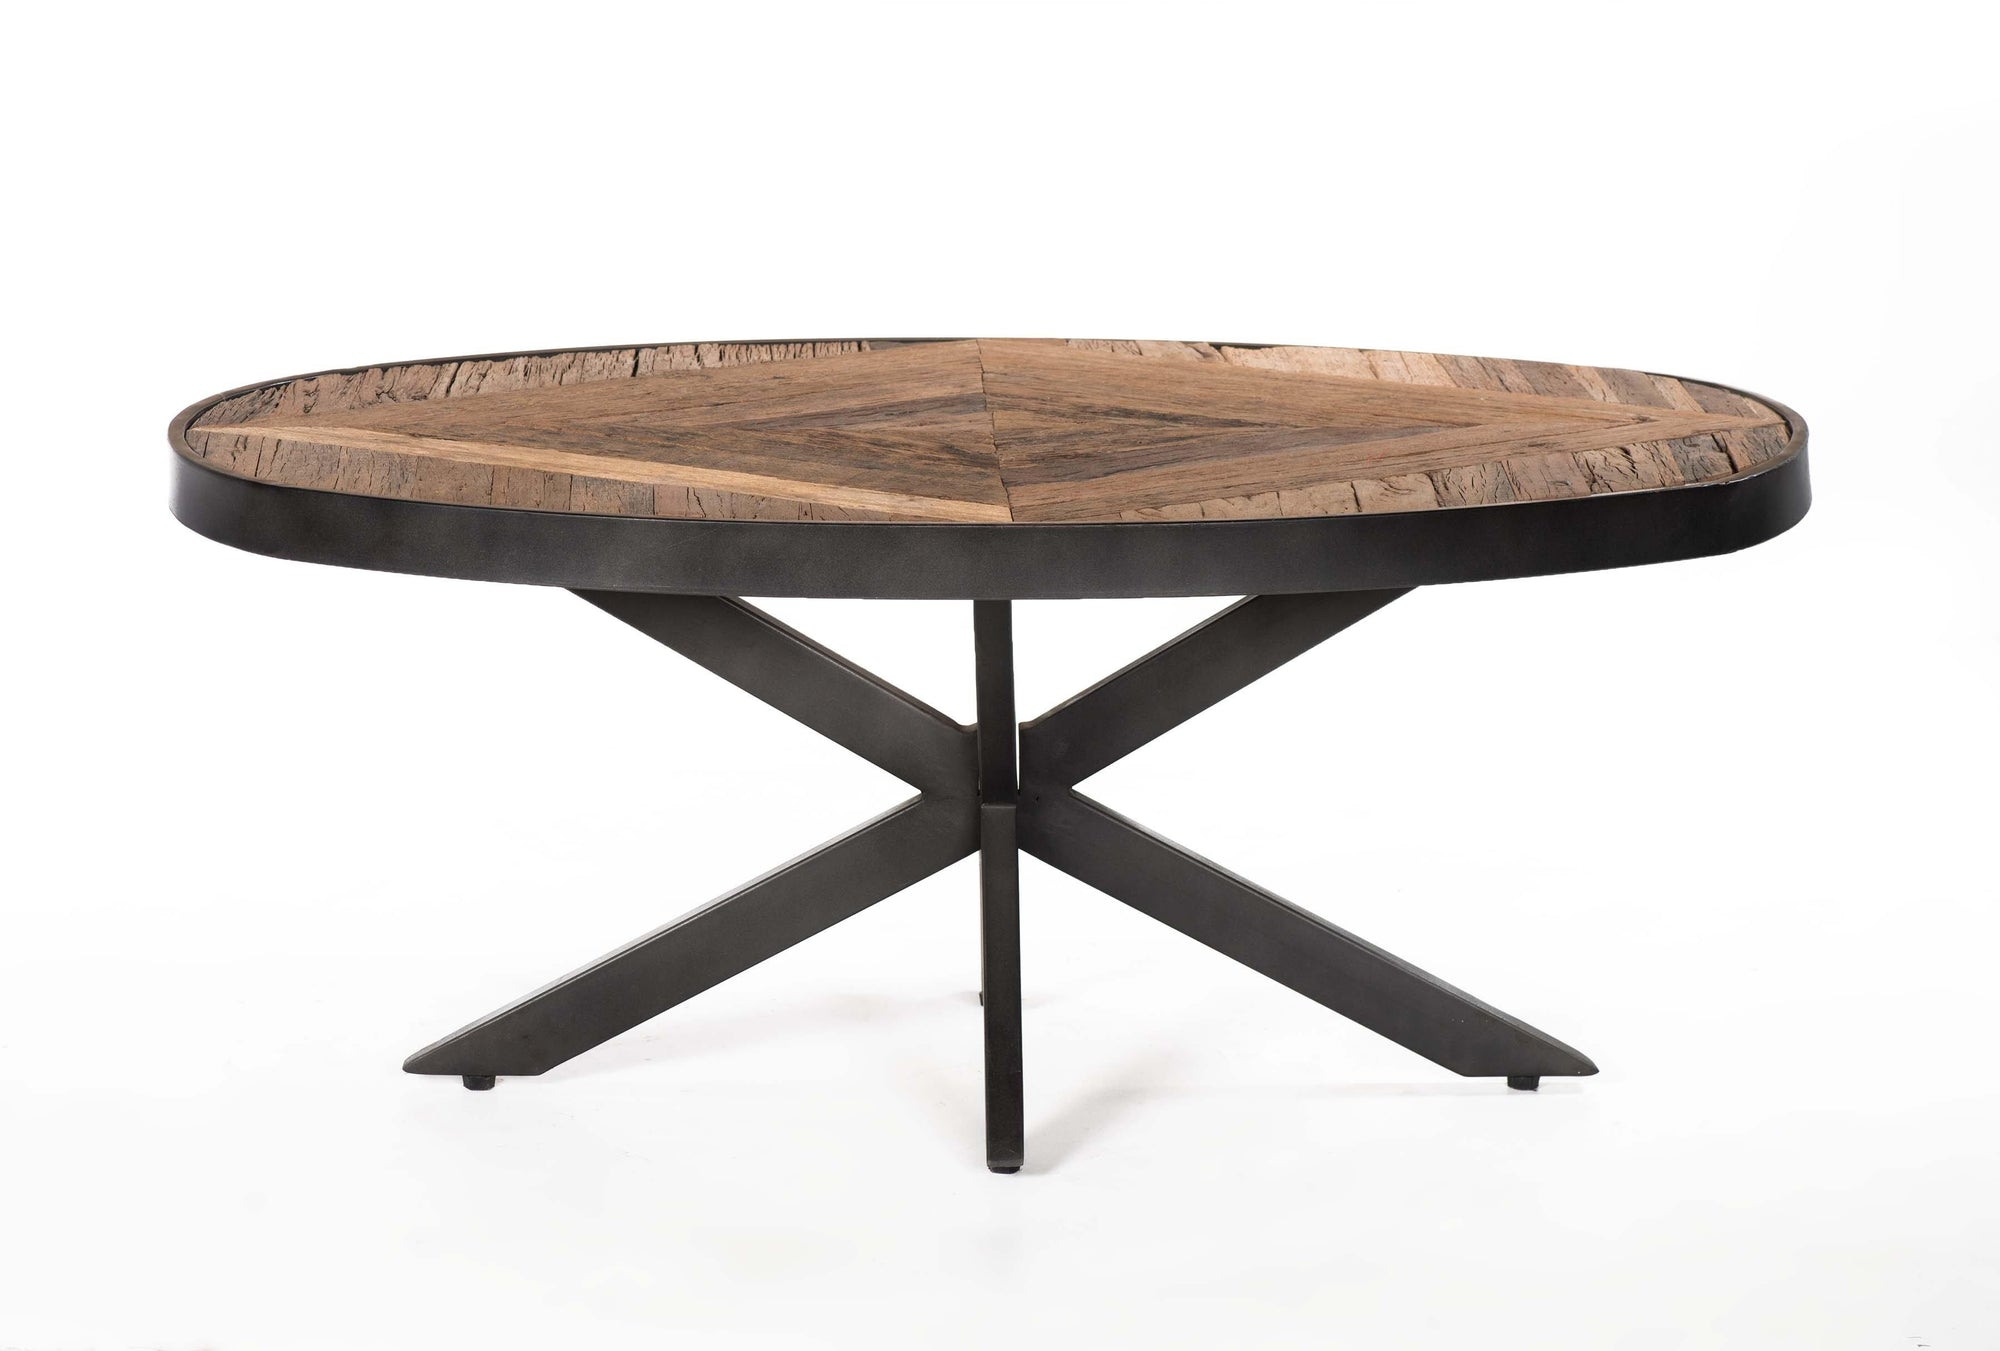 Hand Crafted Oval Coffee Table - Cedartree Home